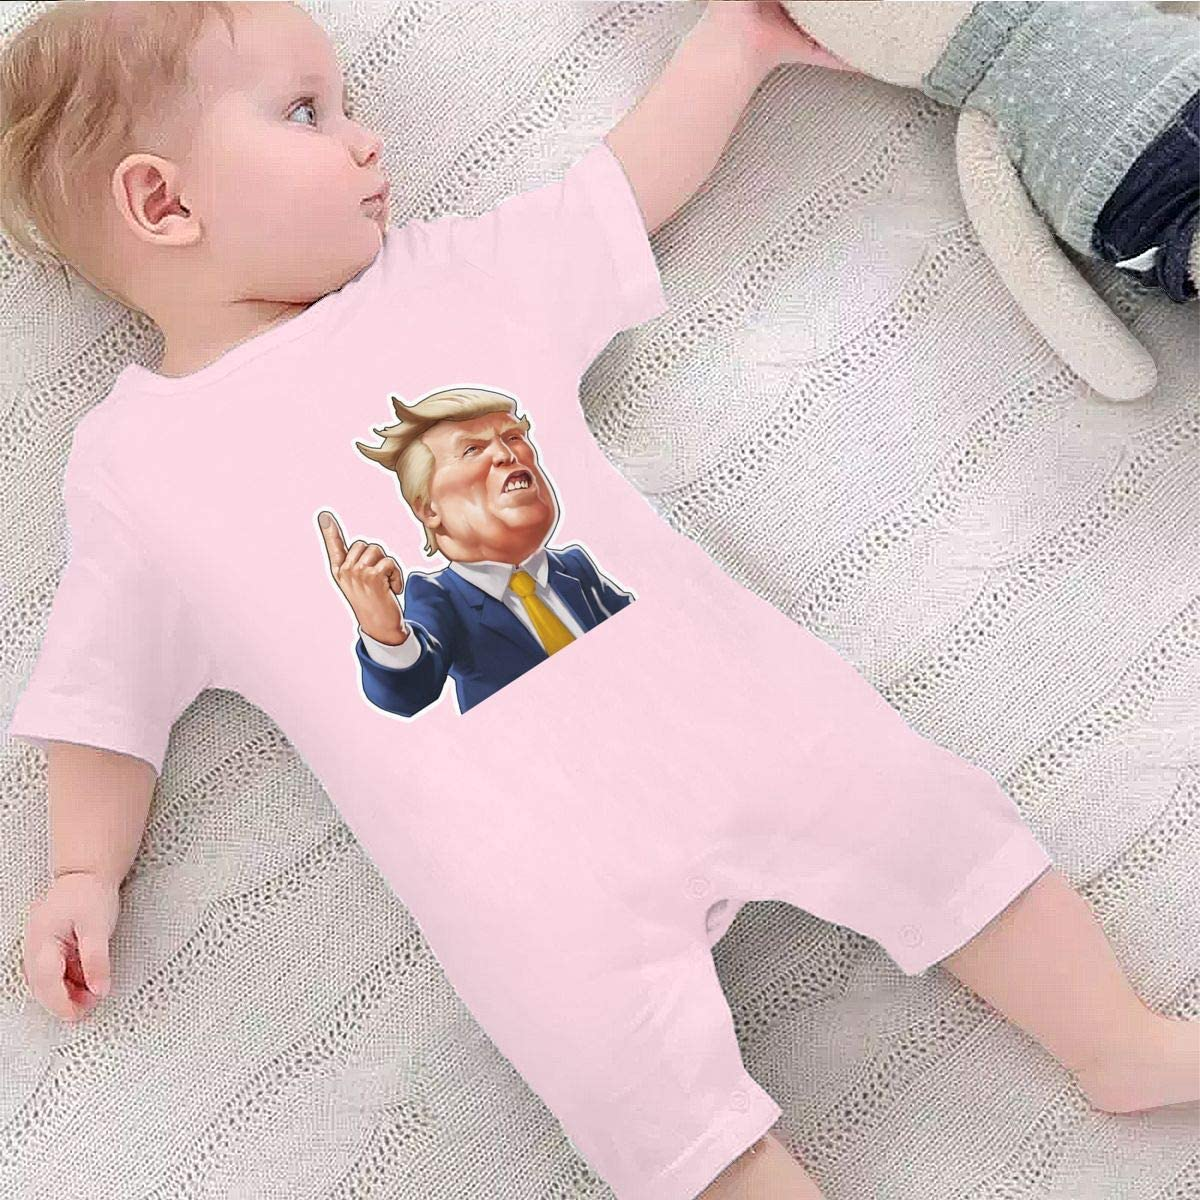 Happiness Station Donald Trump Baby Playsuit Outfits Infant Boys Girls Rompers 0-24 Months Baby Jumpsuit Clothes Kids Playsuits Toddlers Short Sleeve Outfits